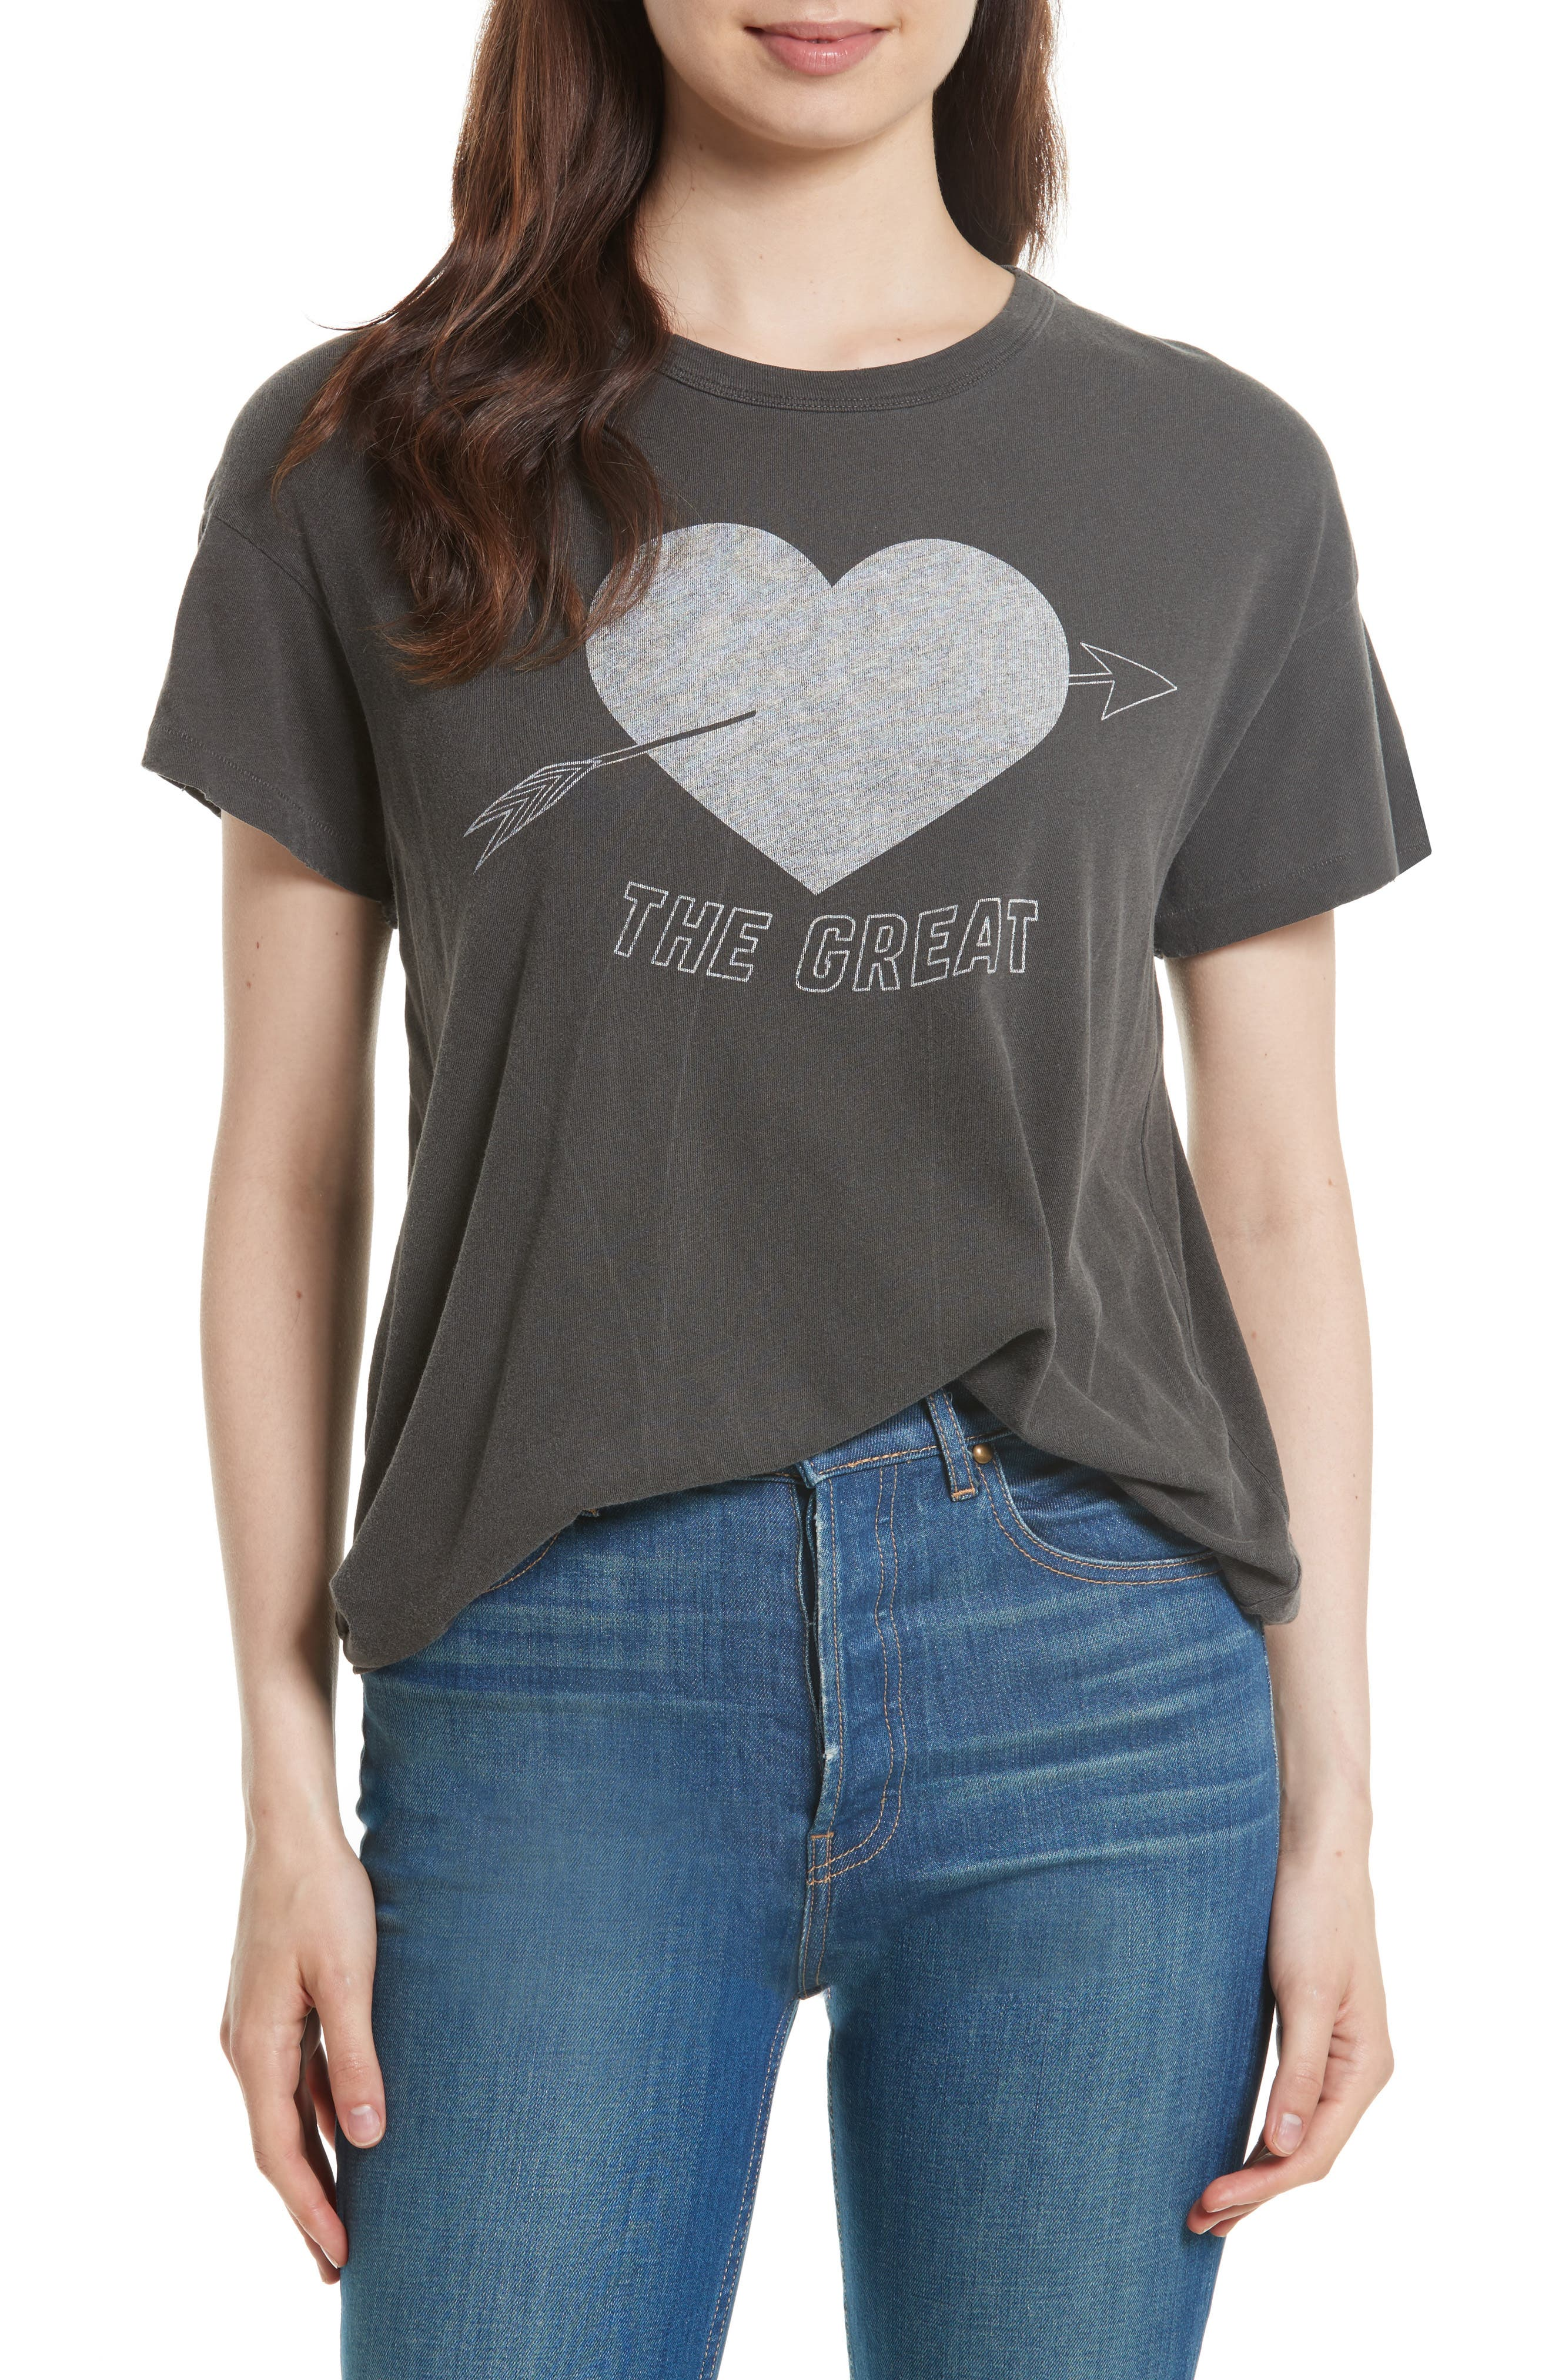 THE GREAT. The Boxy Graphic Tee